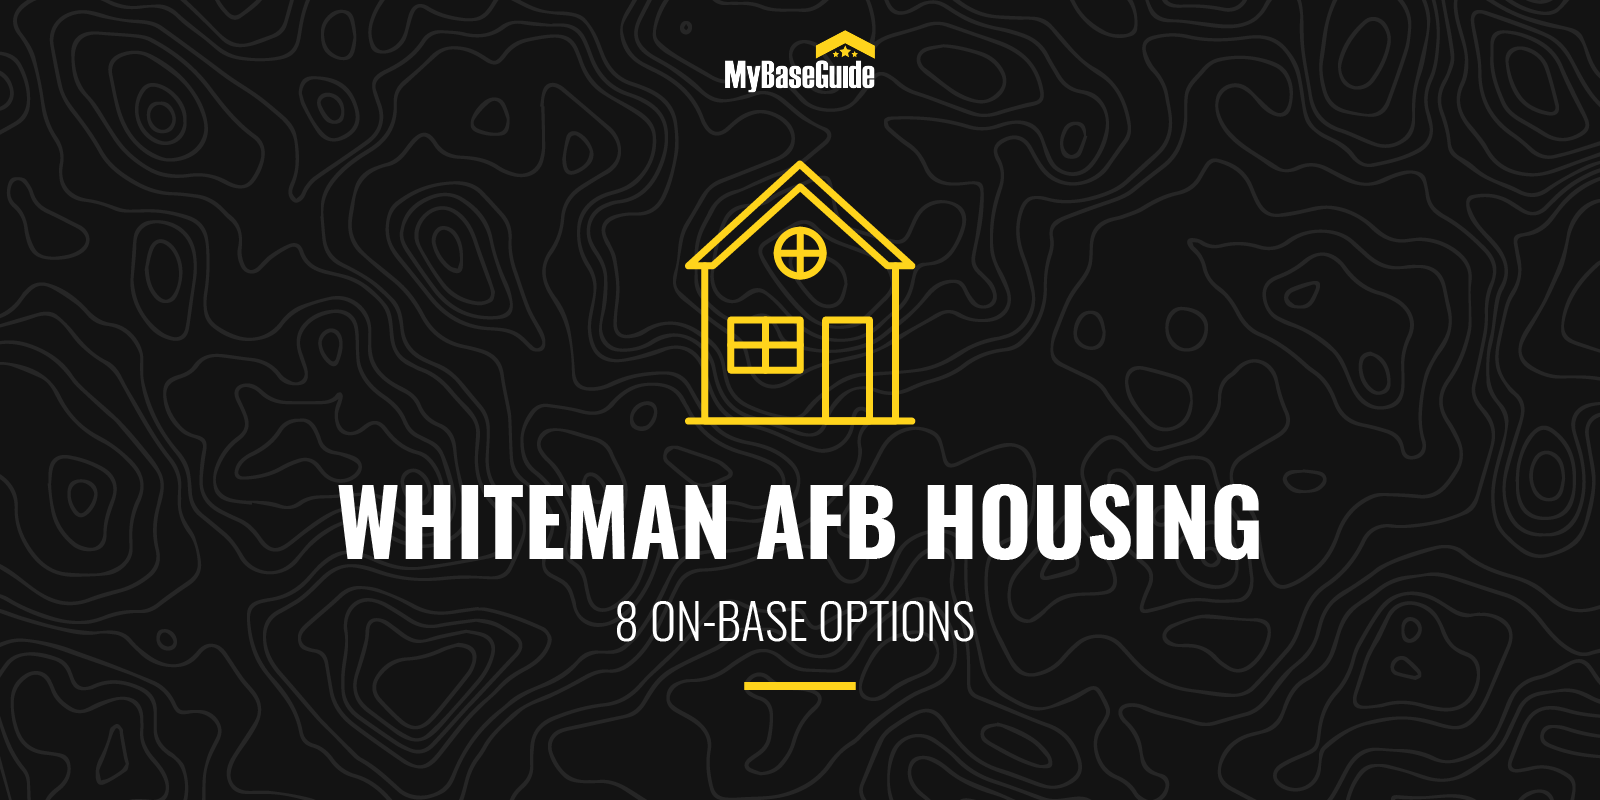 Whiteman AFB Housing: 8 On-Base Options